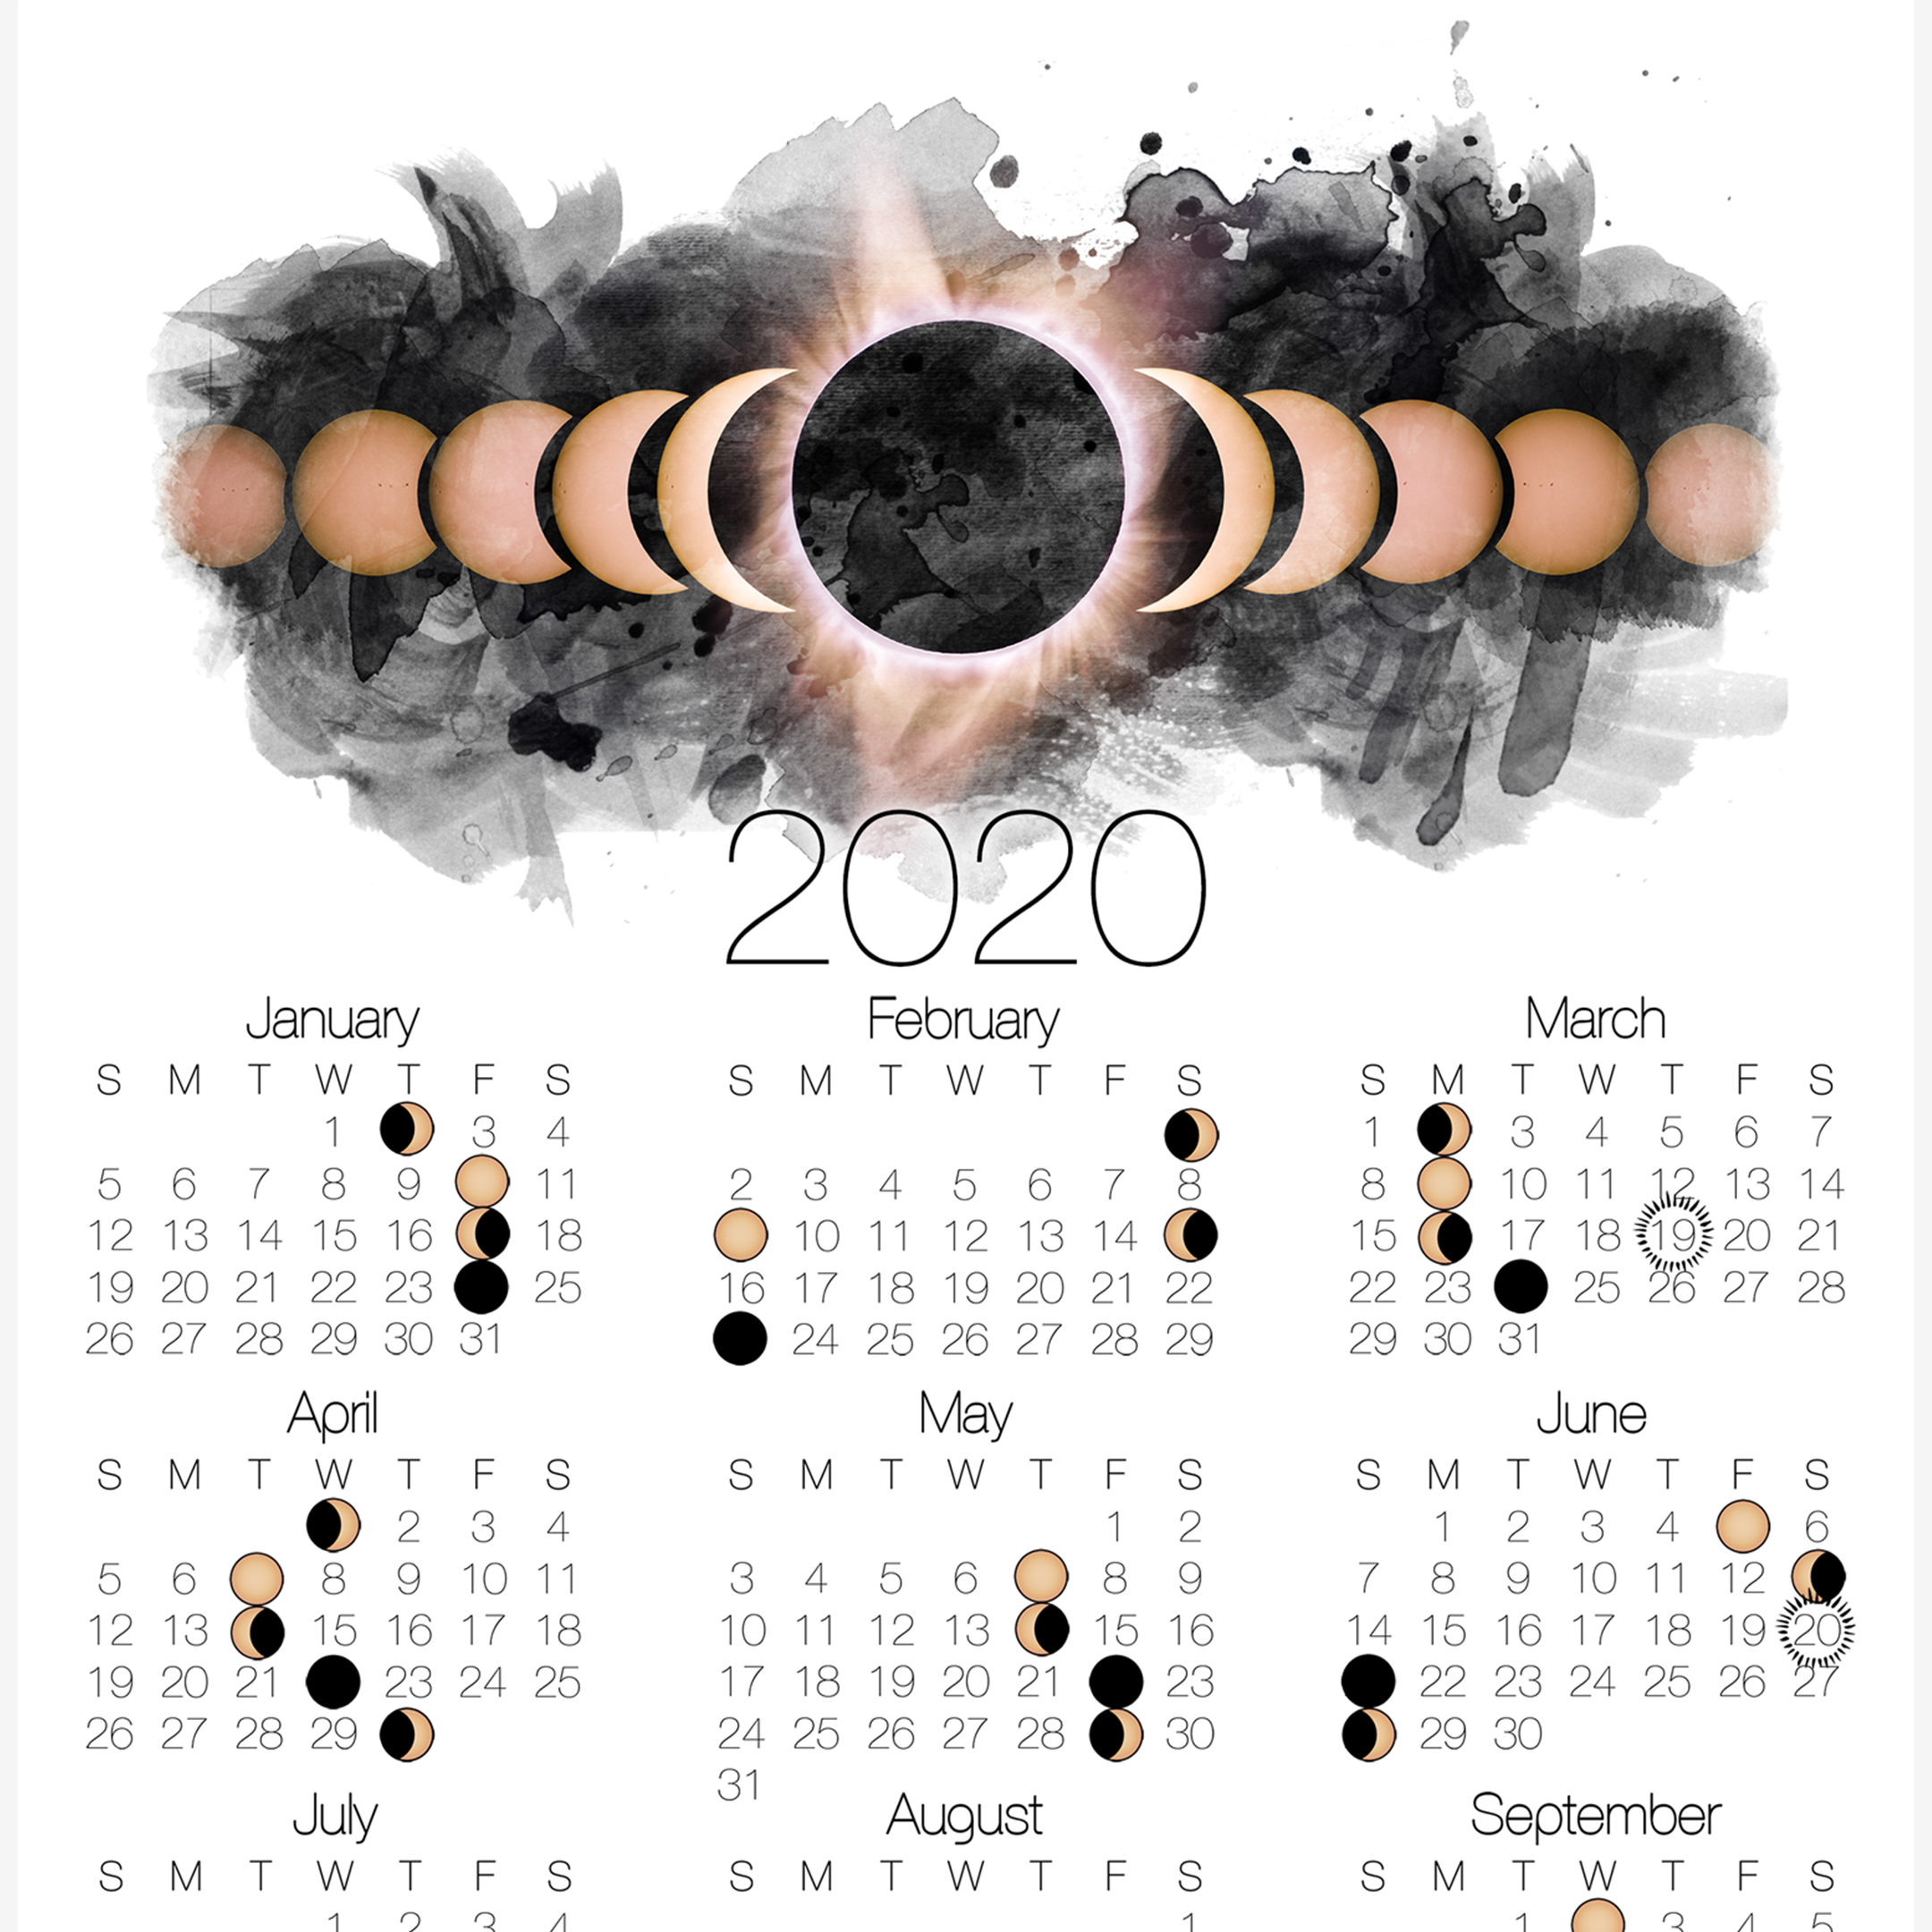 2020 Moon Phase Calendar - Lunar Calendar With Solar Eclipse